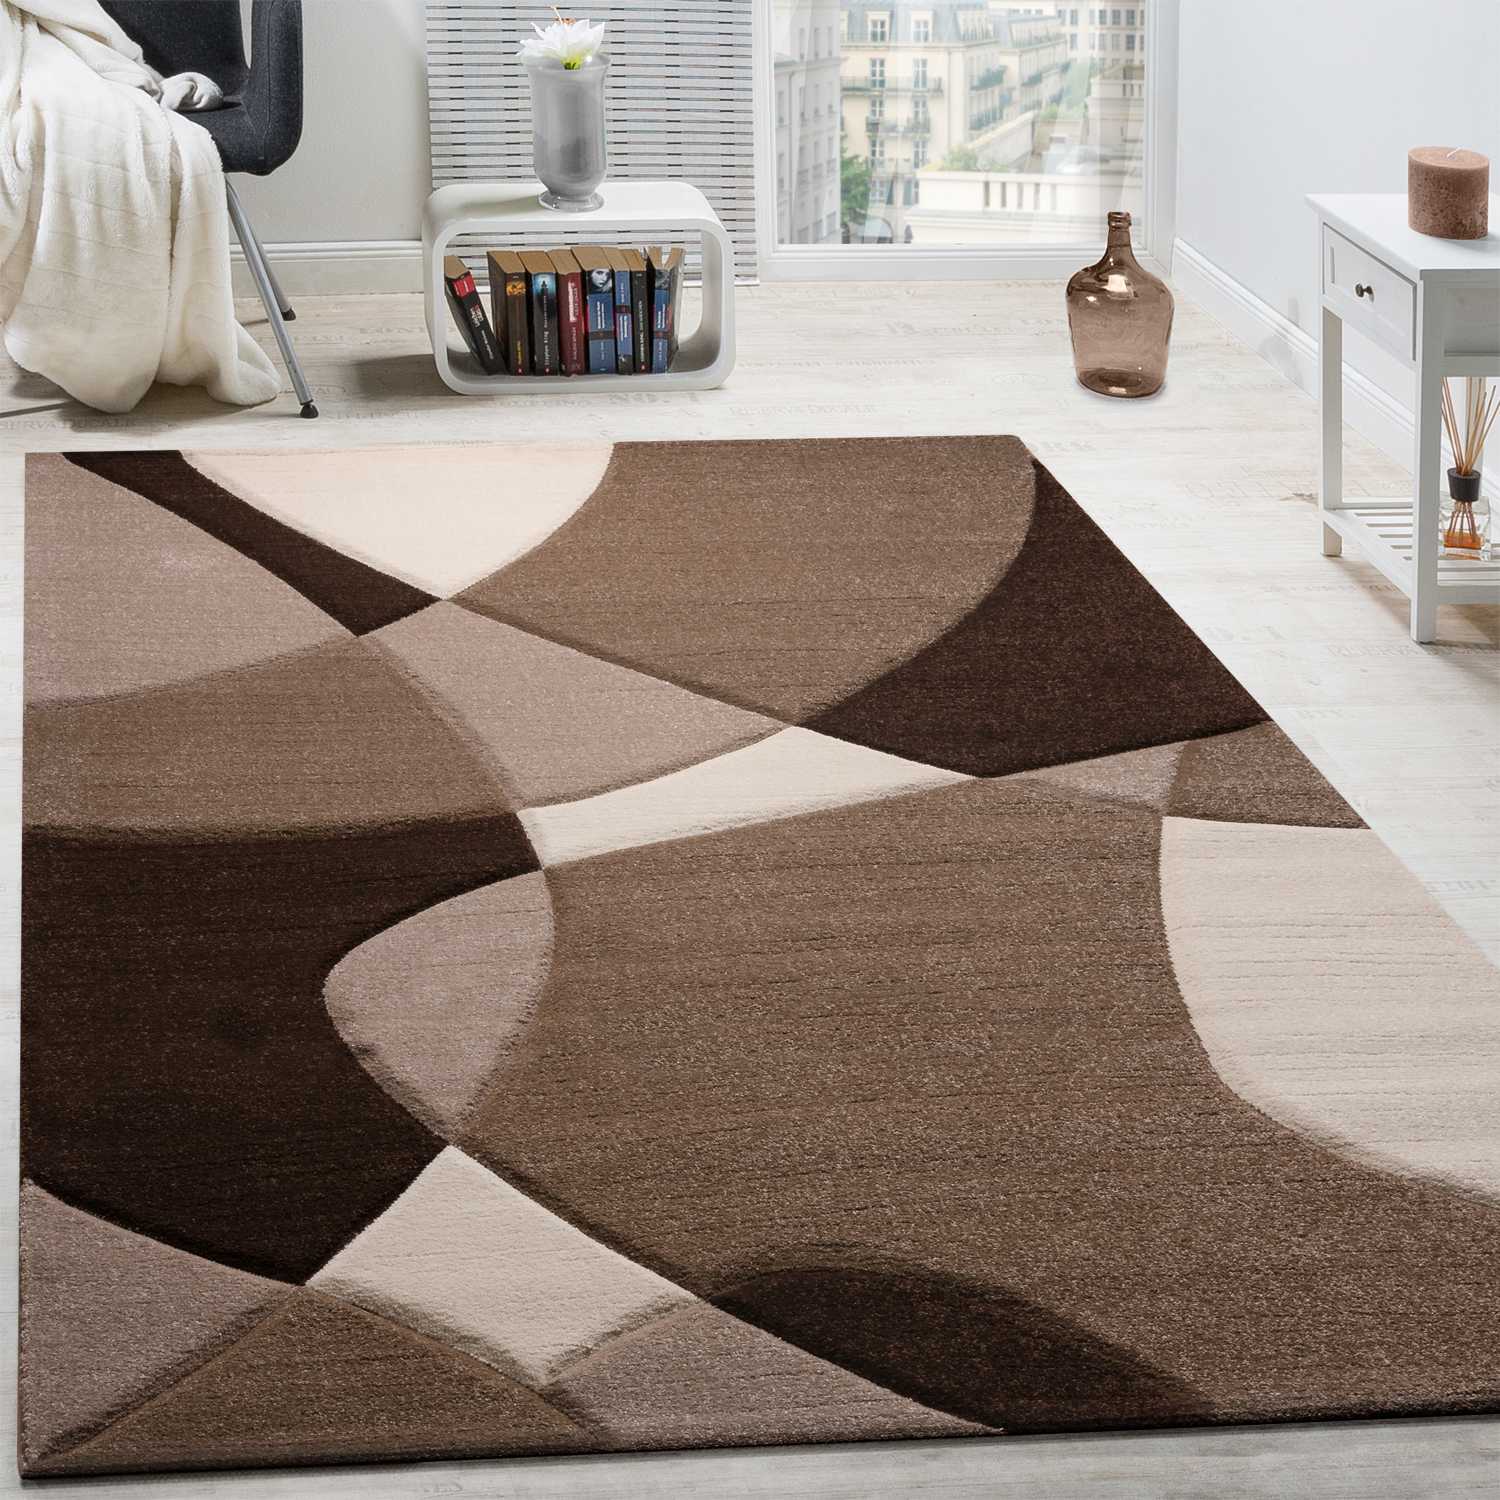 Entzuckend Designer Rug Modern Geometric Pattern Contour Cut In Brown Cream Beige